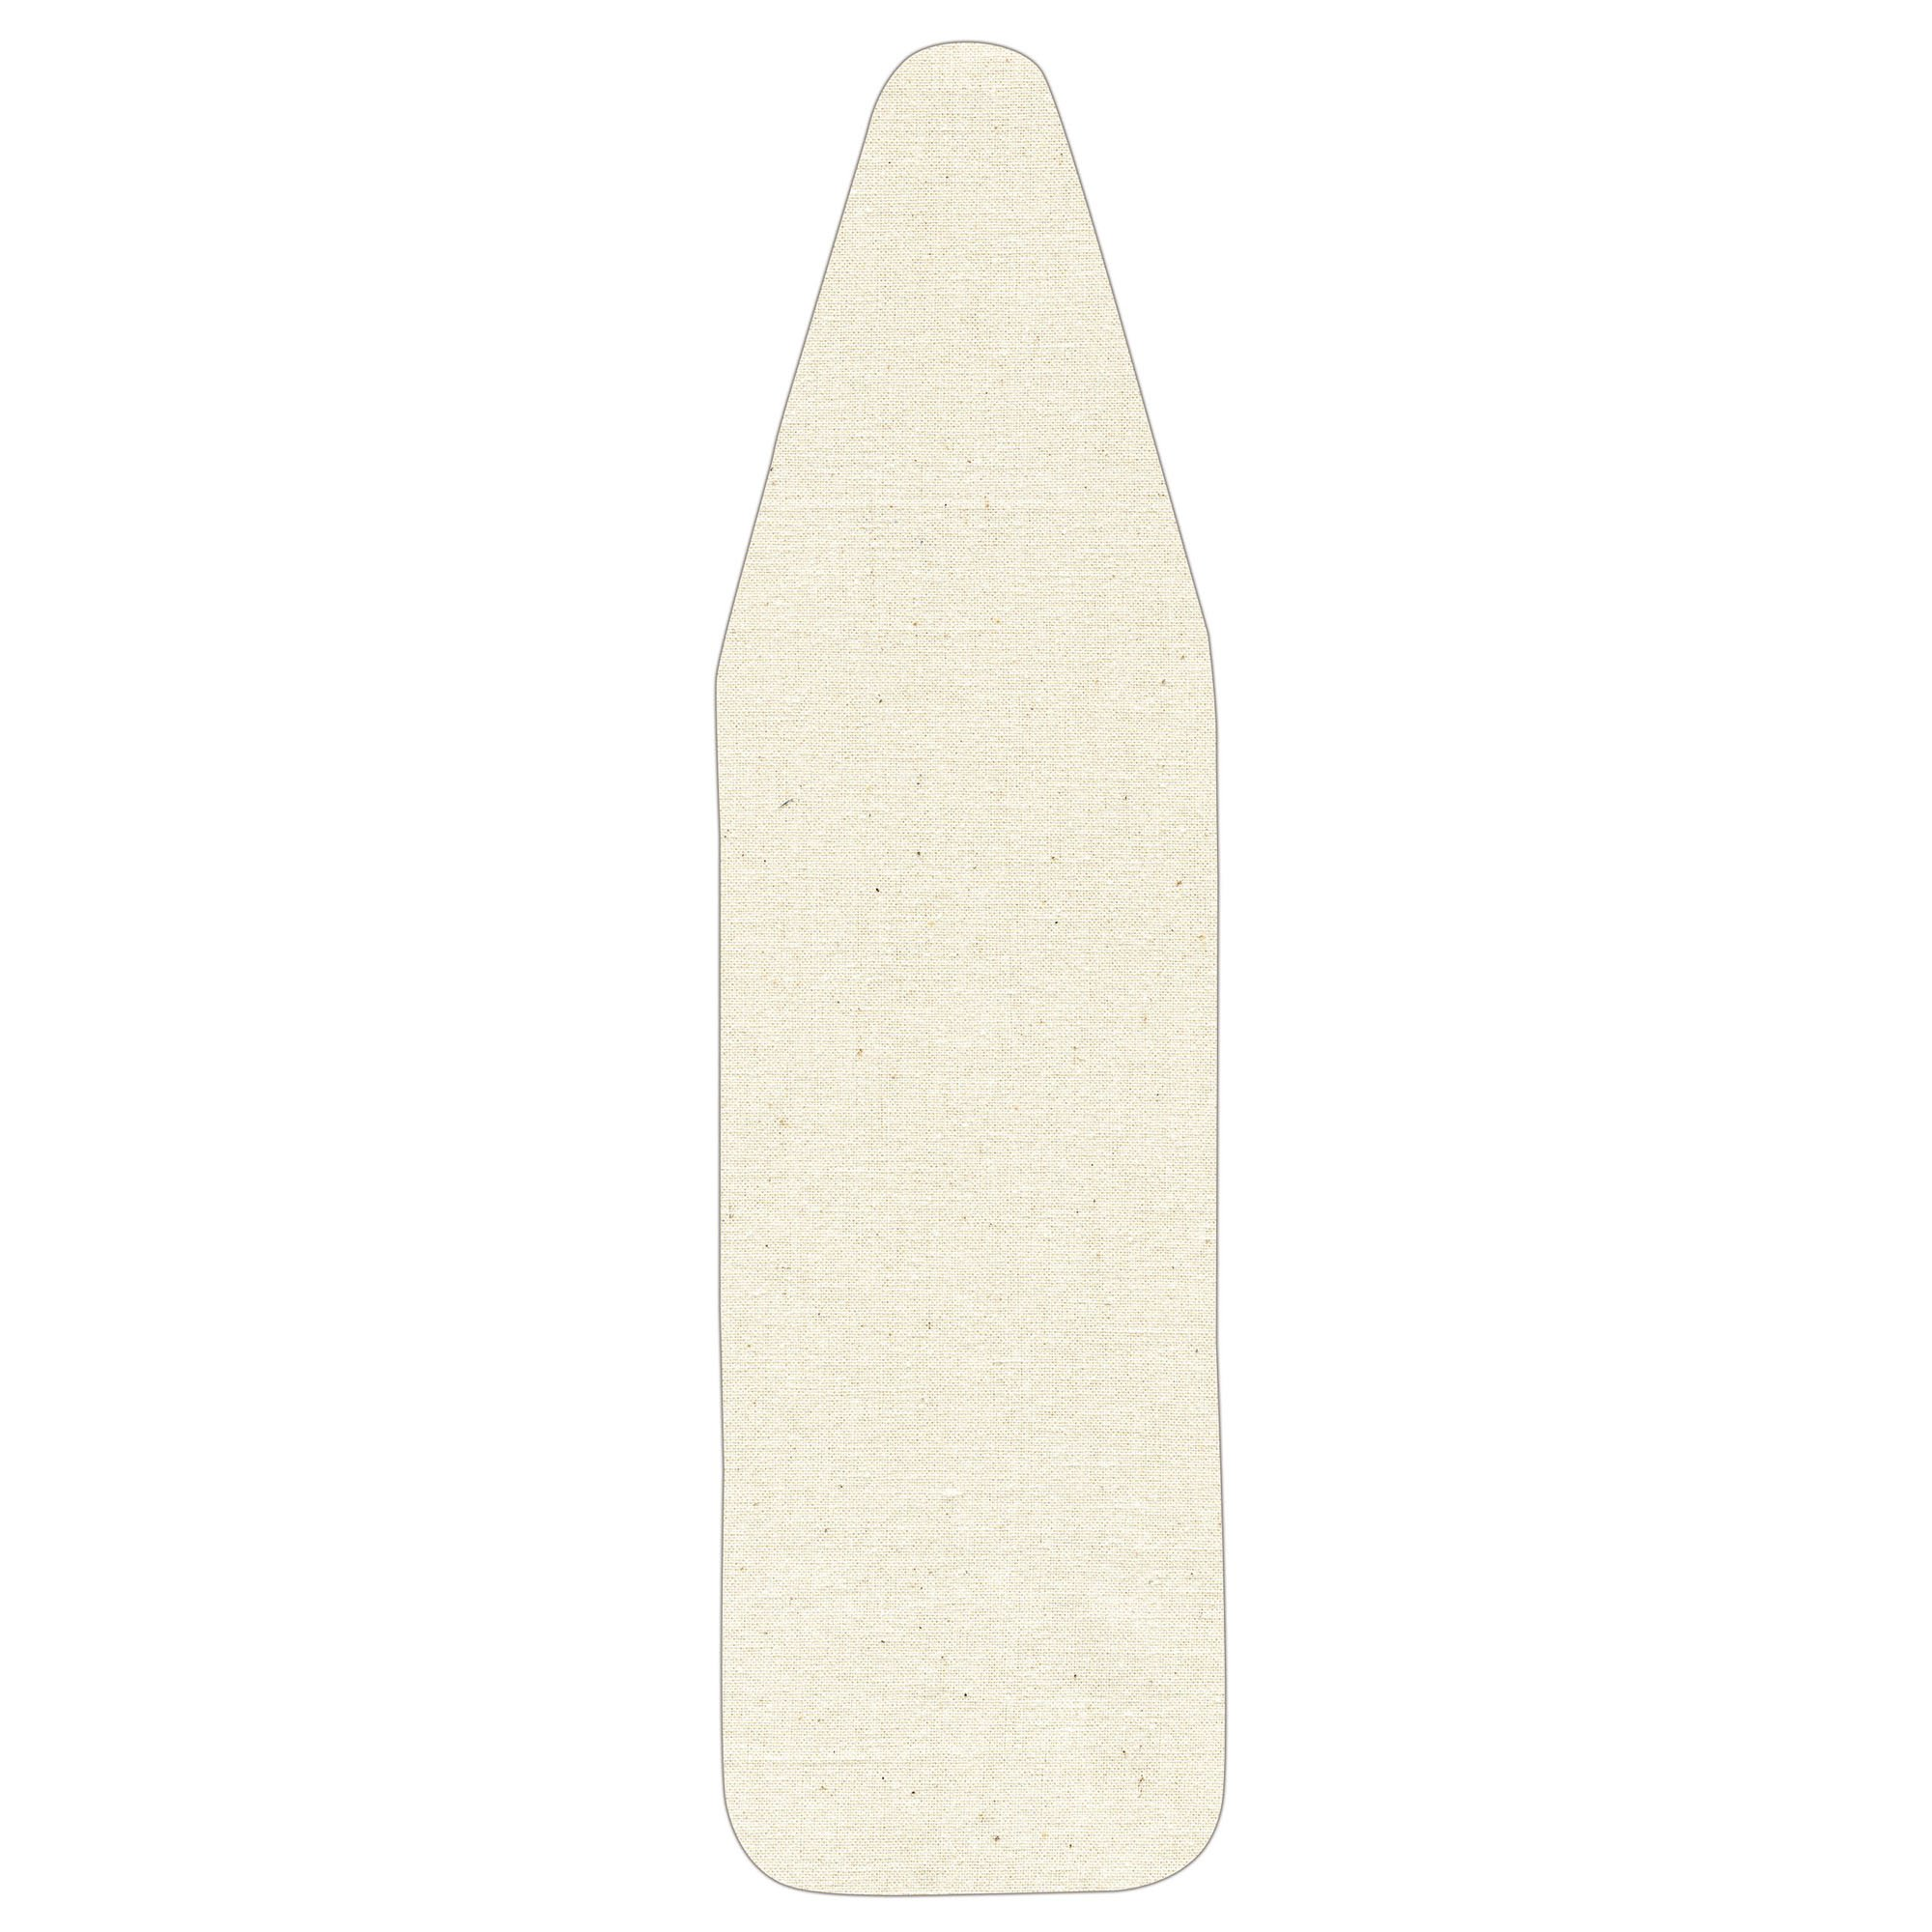 Household Essentials 7347 Replacement Pad Cover Wide-Top Ironing Board | Natural Cotton Canvas by Household Essentials